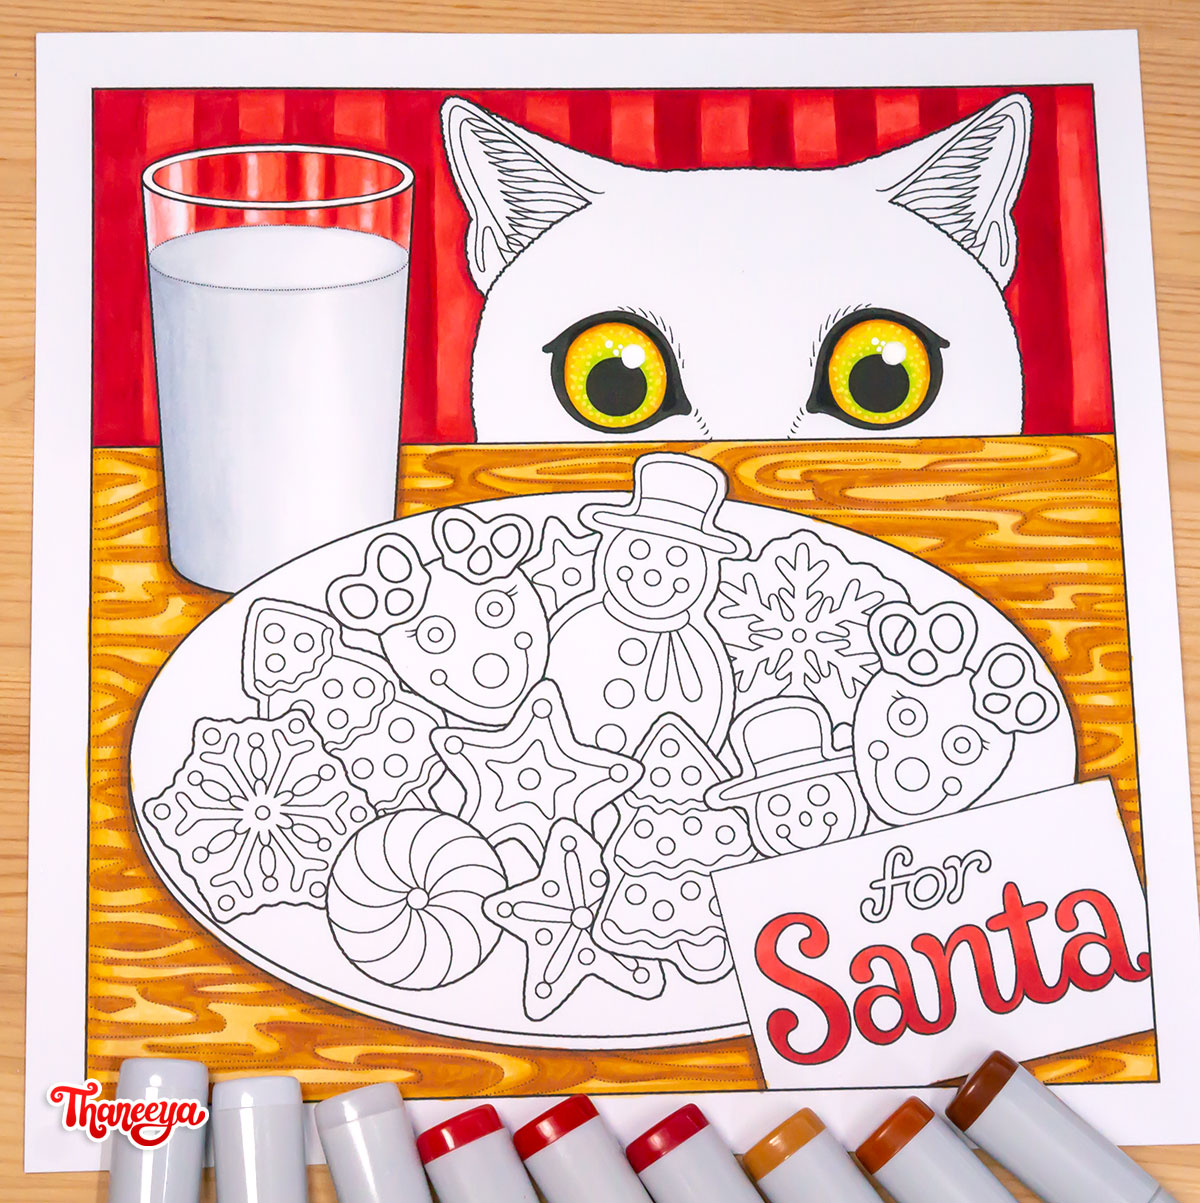 Cookies for Santa coloring page from Thaneeya McArdle's Holiday Cheer Coloring Book